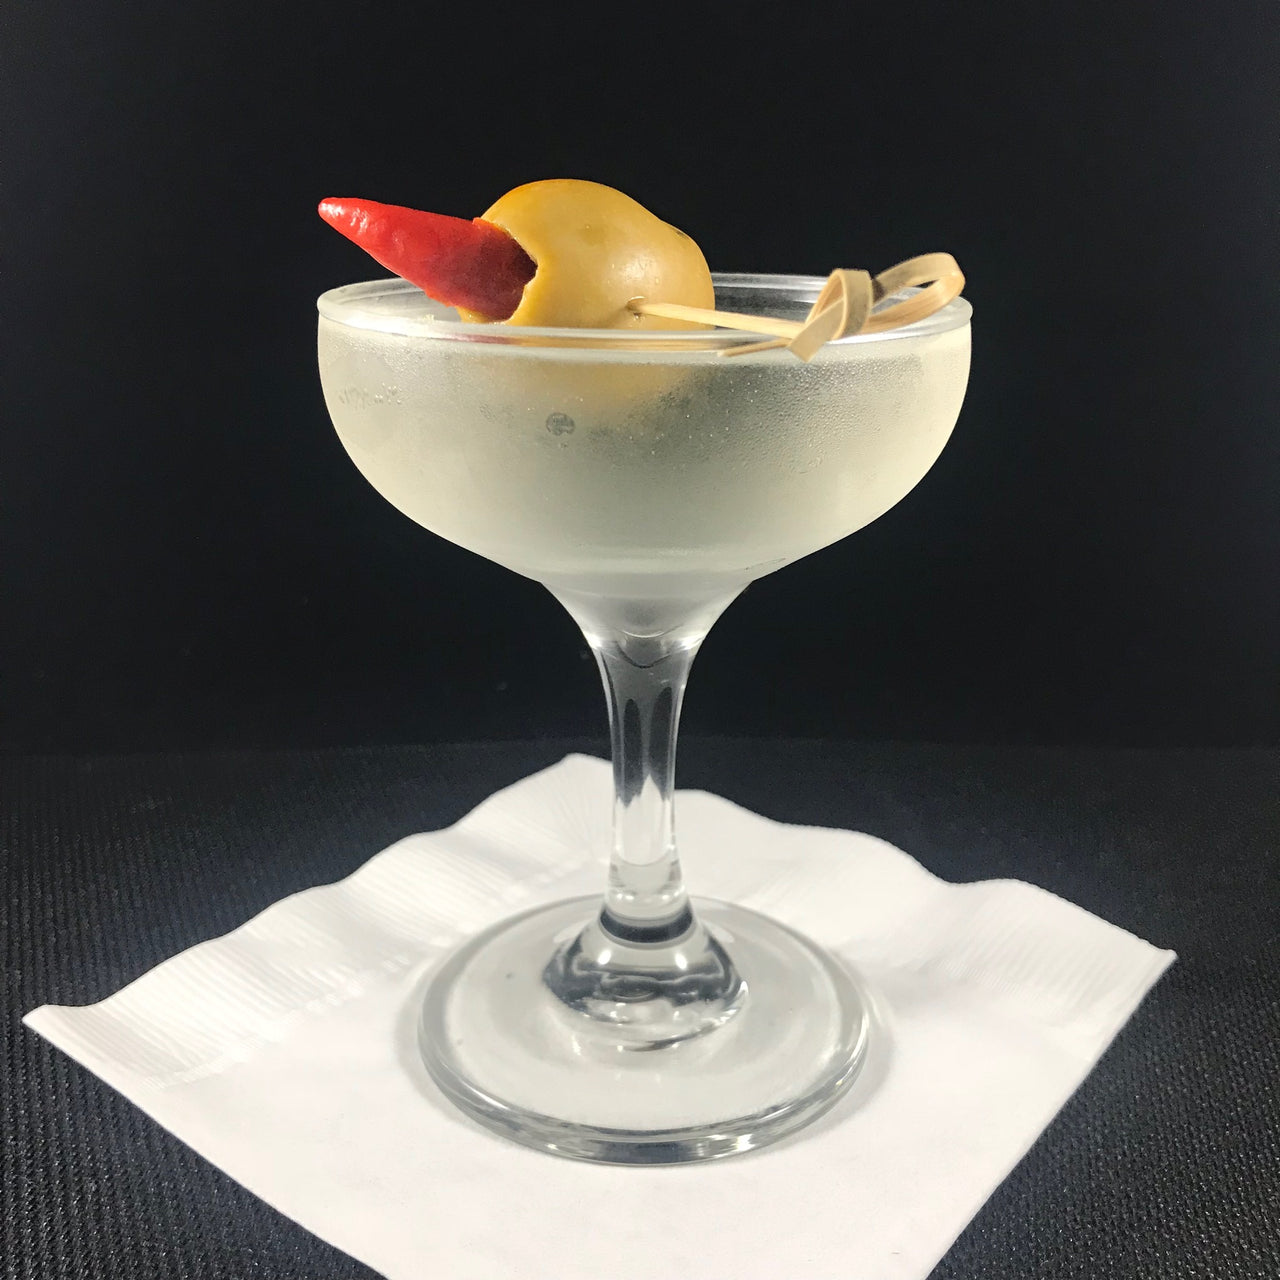 THE DECONSTRUCTED MARTINI (Mar. 10th, 6-8PM)